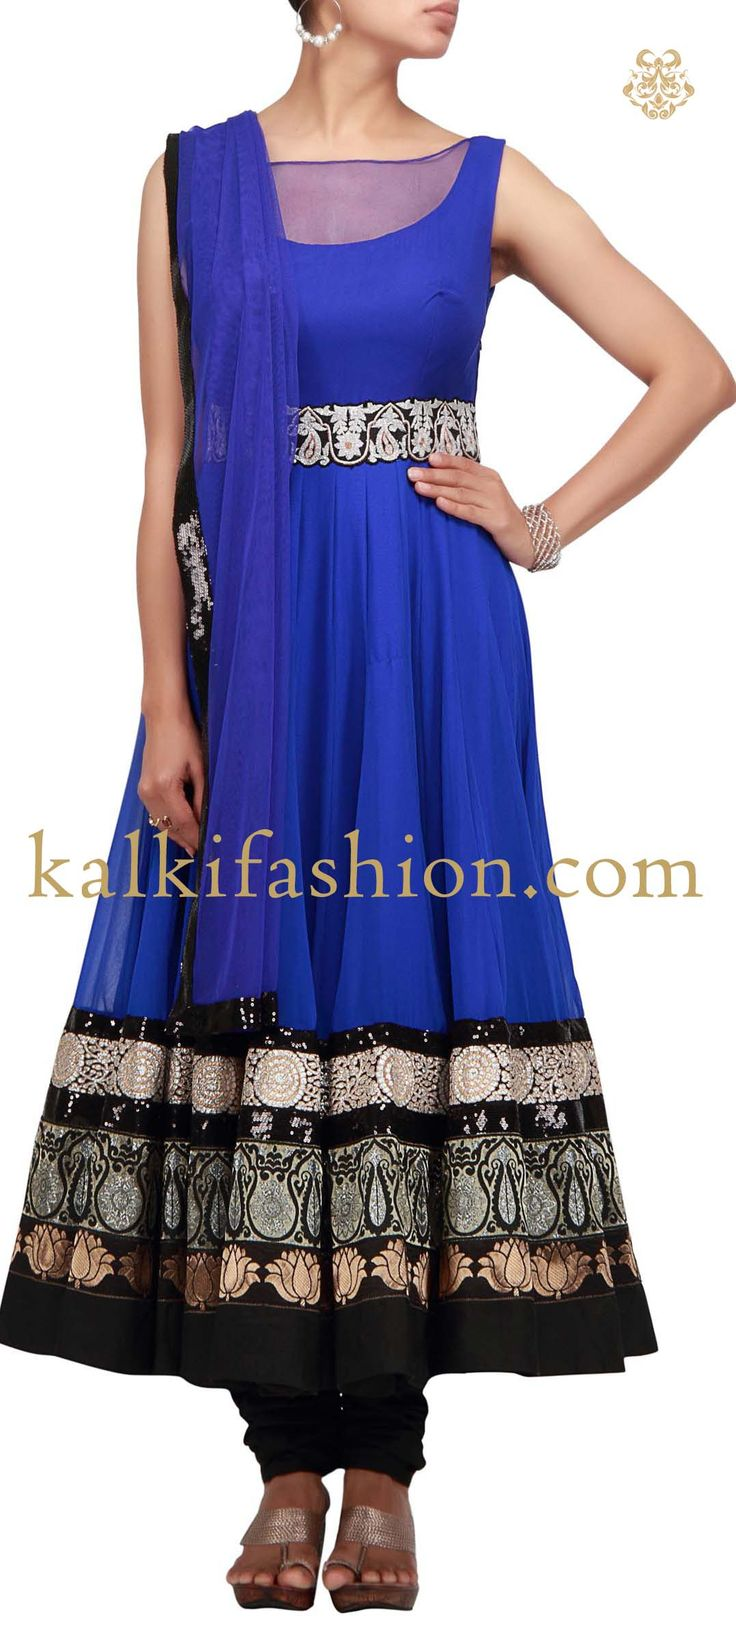 Buy it now http://www.kalkifashion.com/blue-anarkali-suit-with-multiple-brocade-lace.html Blue anarkali suit with multiple brocade lace